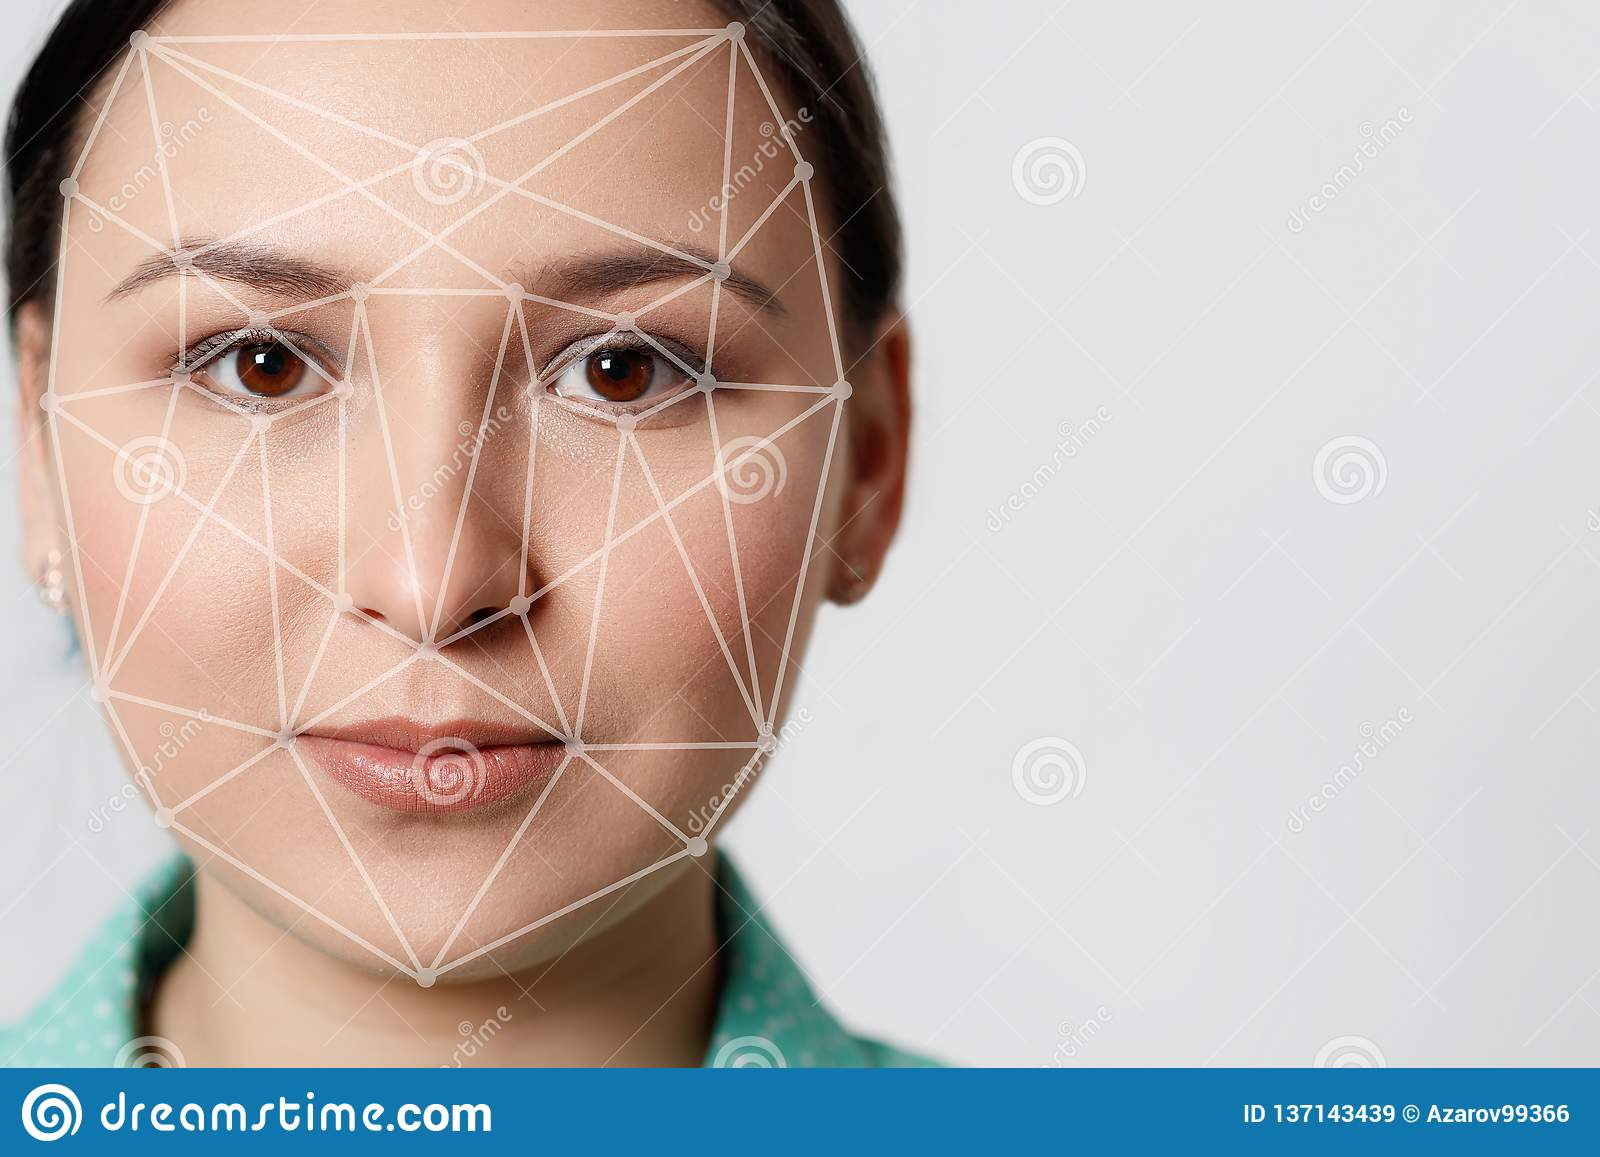 Biometric verification woman face recognition detection security